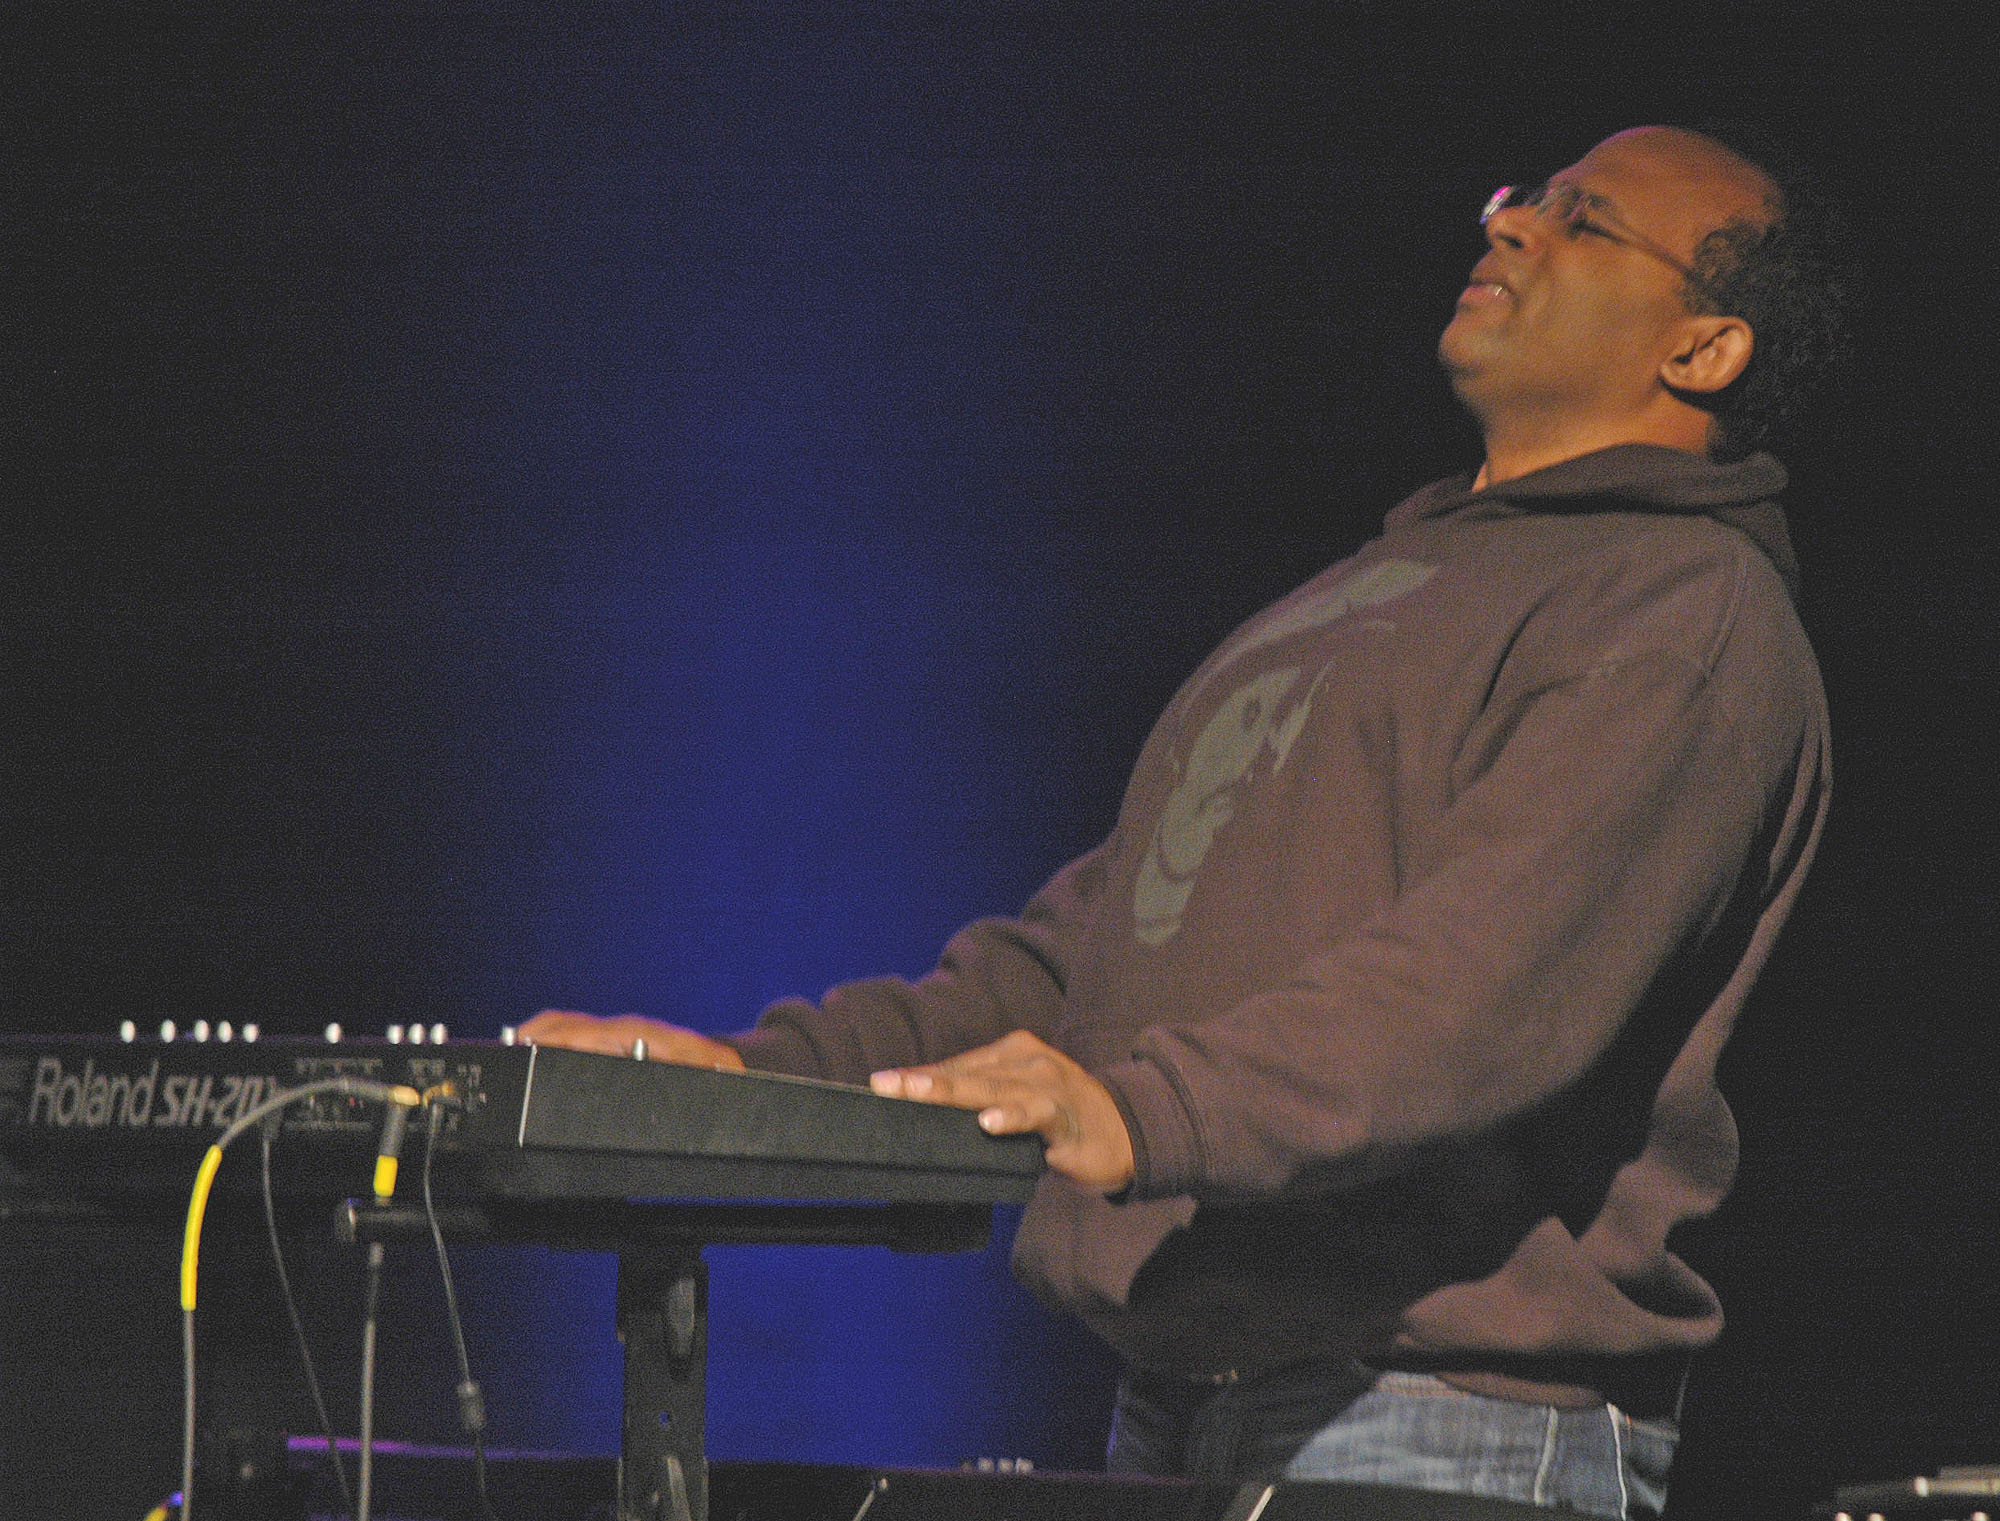 Vince Evans, Performing with Lenny White's Anomaly at the 2010 New Universe Music Festival